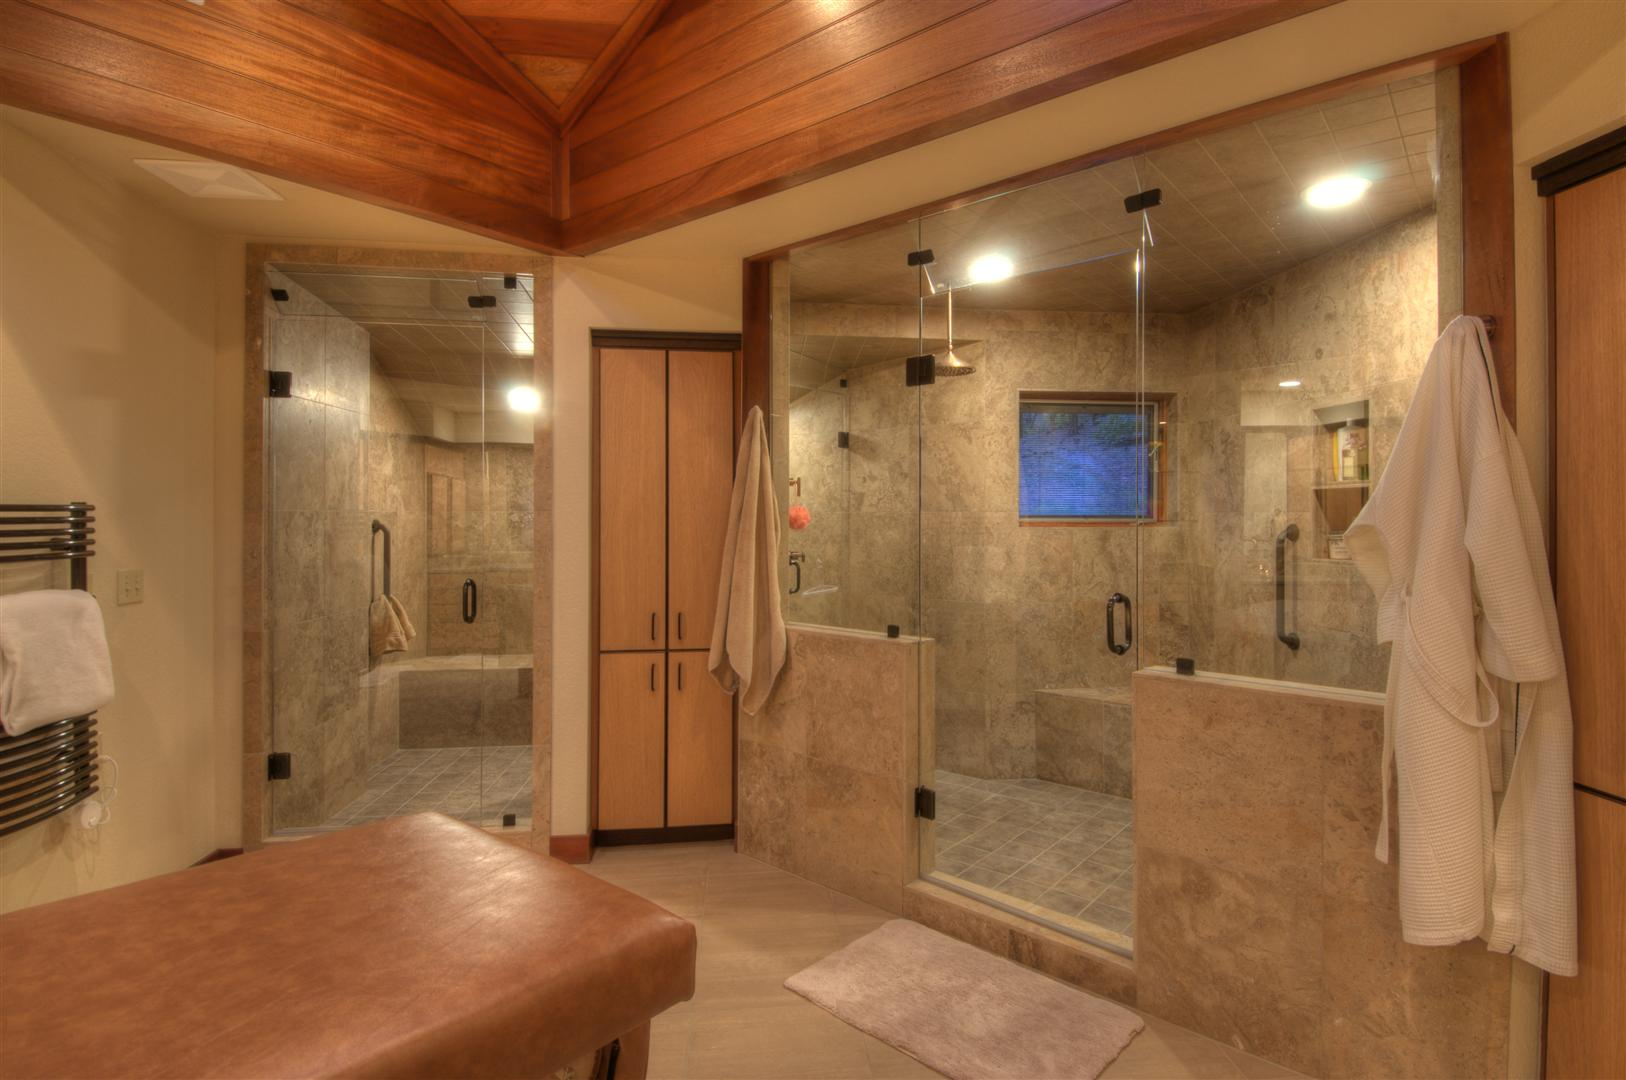 Bathroom design and remodeling in durango colorado for Large bathroom pictures